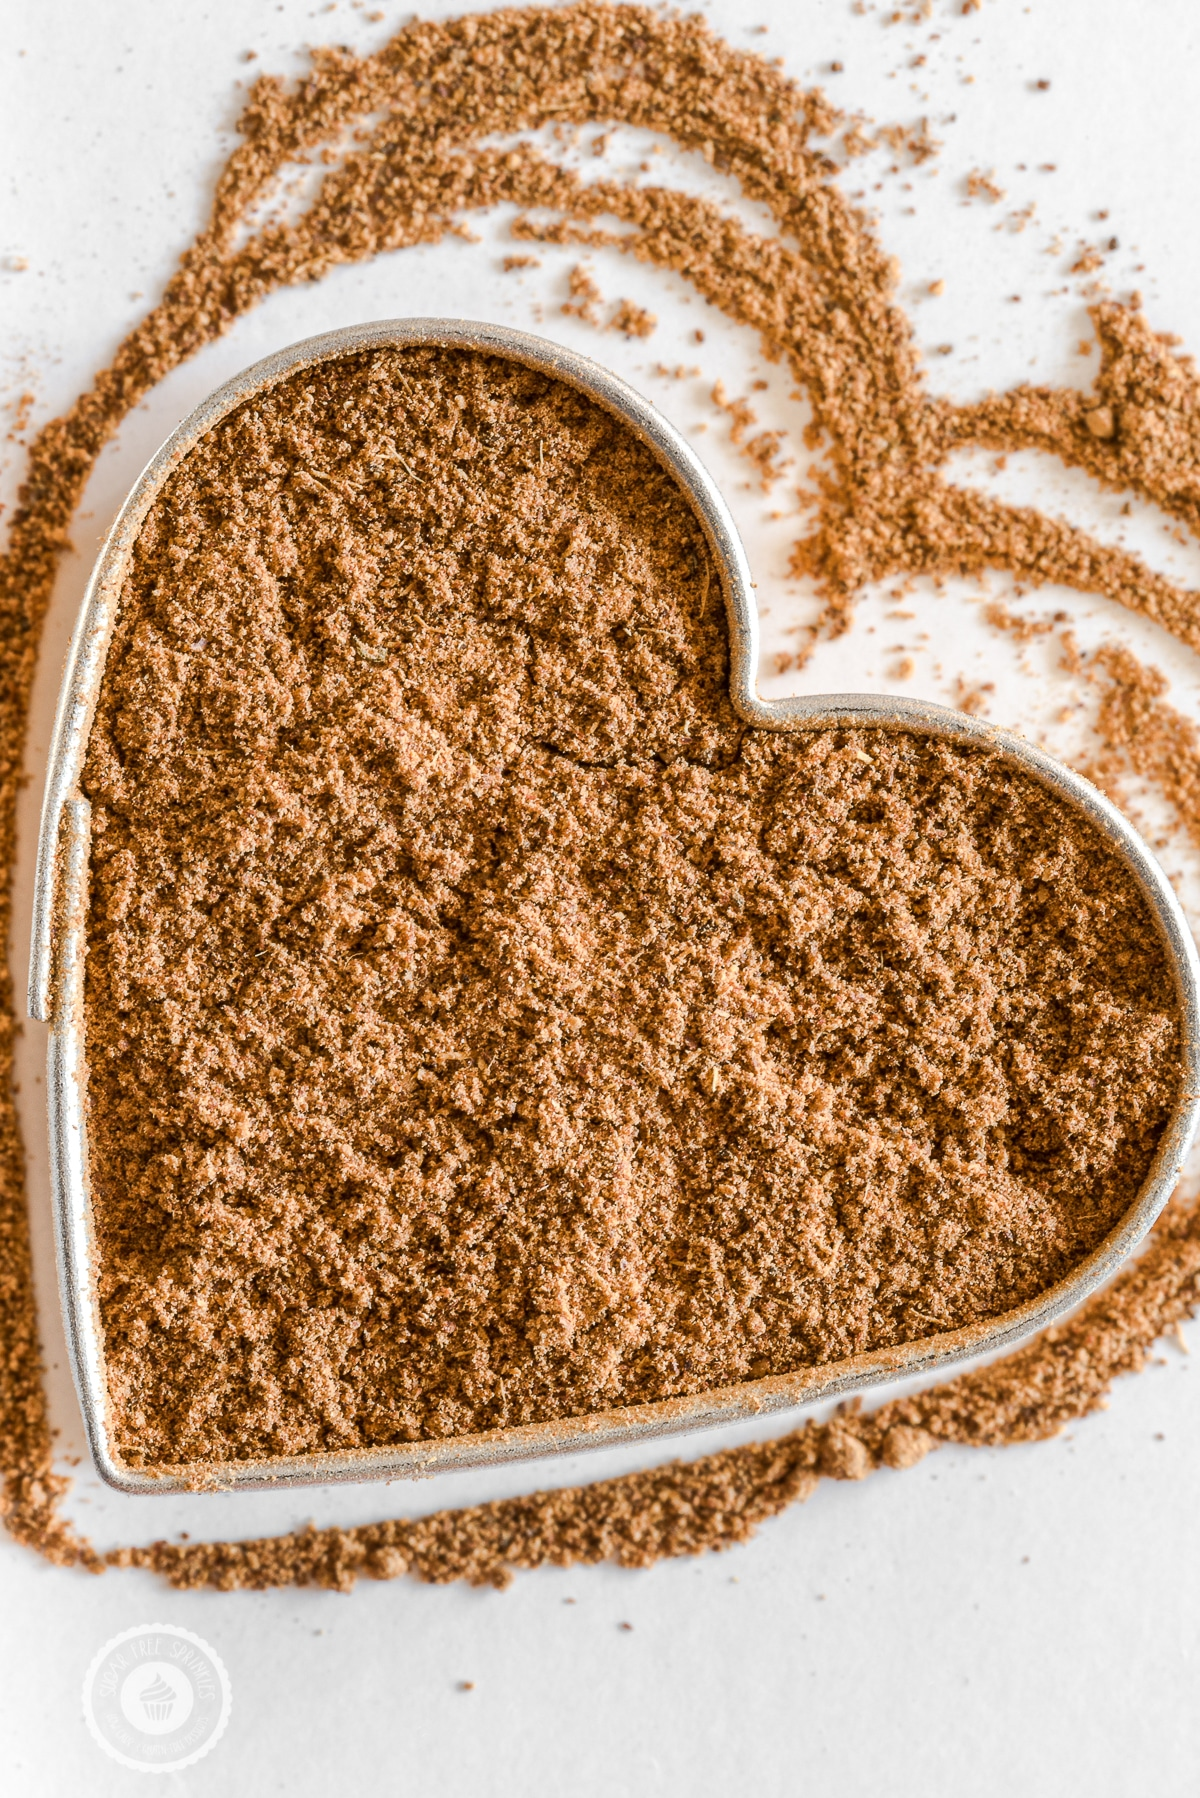 A heart shaped cookie cutter filled with a pumpkin pie spice blend on a bright white background